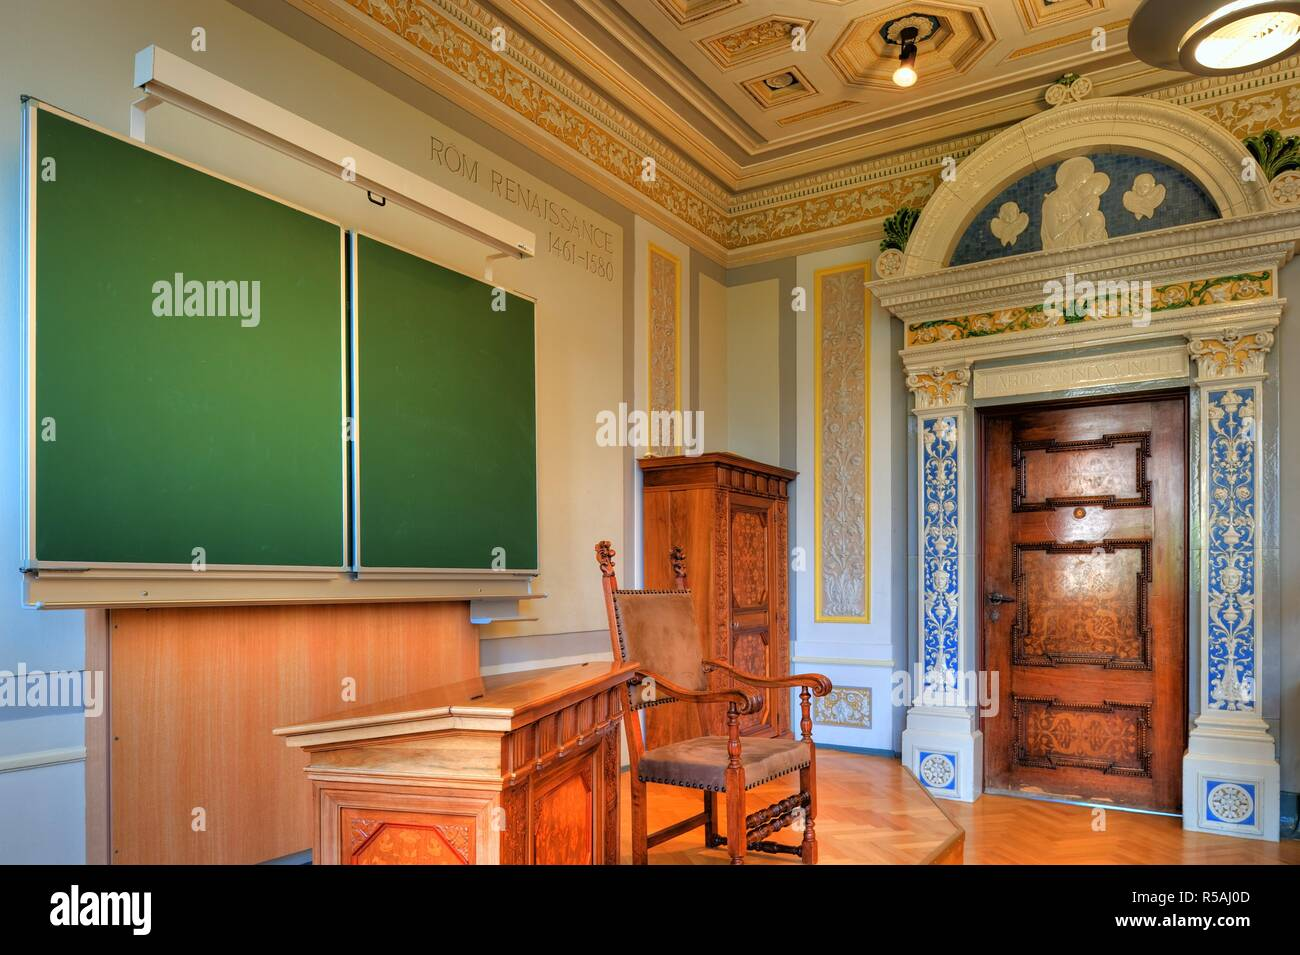 Niederösterreich, Berndorf, Stilklassen in den von Arthur Krupp errichteten Schulen, 1896 - Lower Austria, Berndorf, Style Classrooms, 1896 Stock Photo